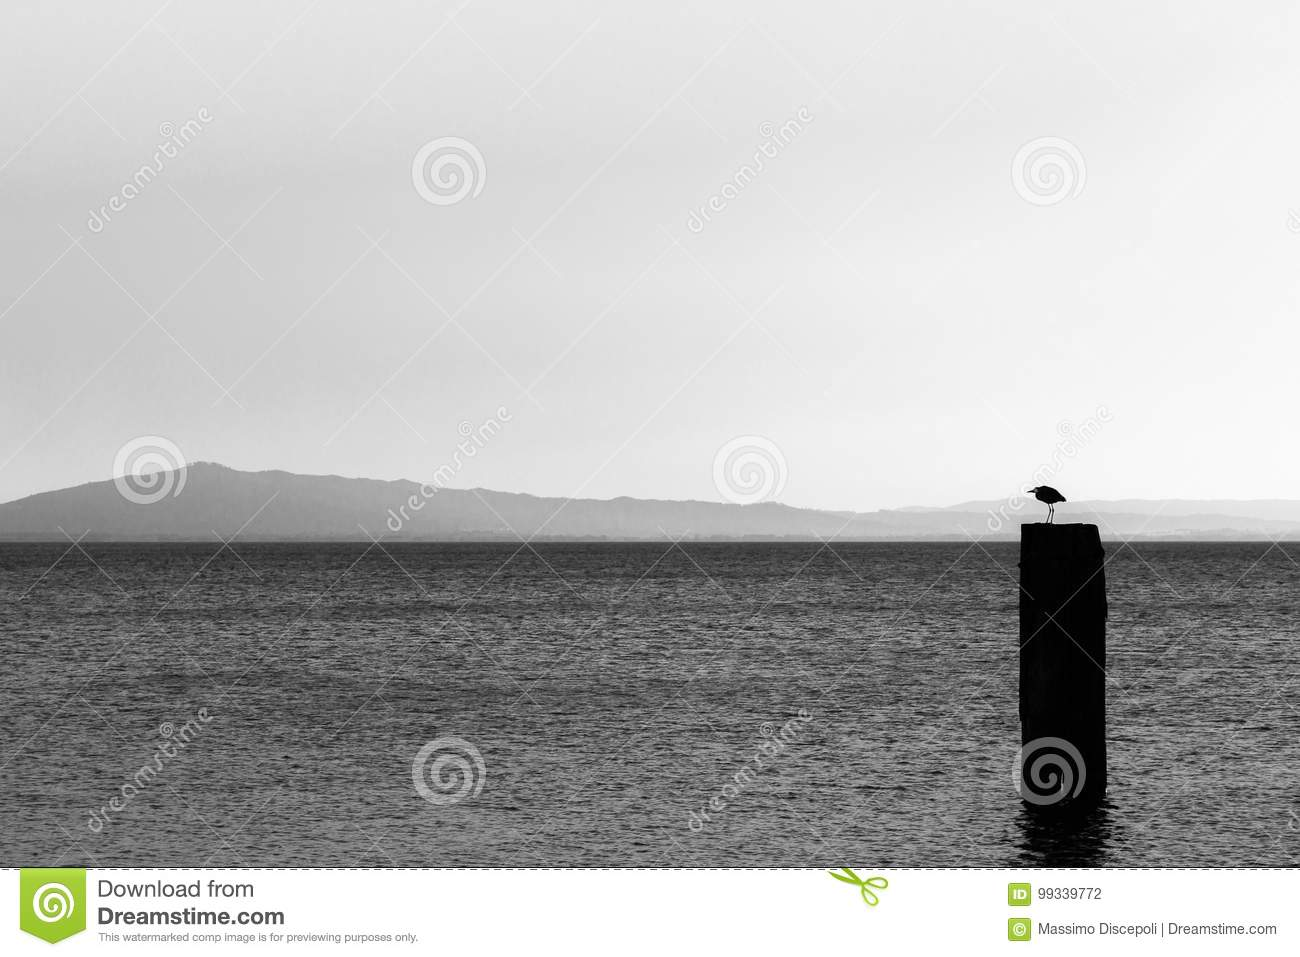 A seagull over a pole on a lake, with distant hills in the background and very soft tones